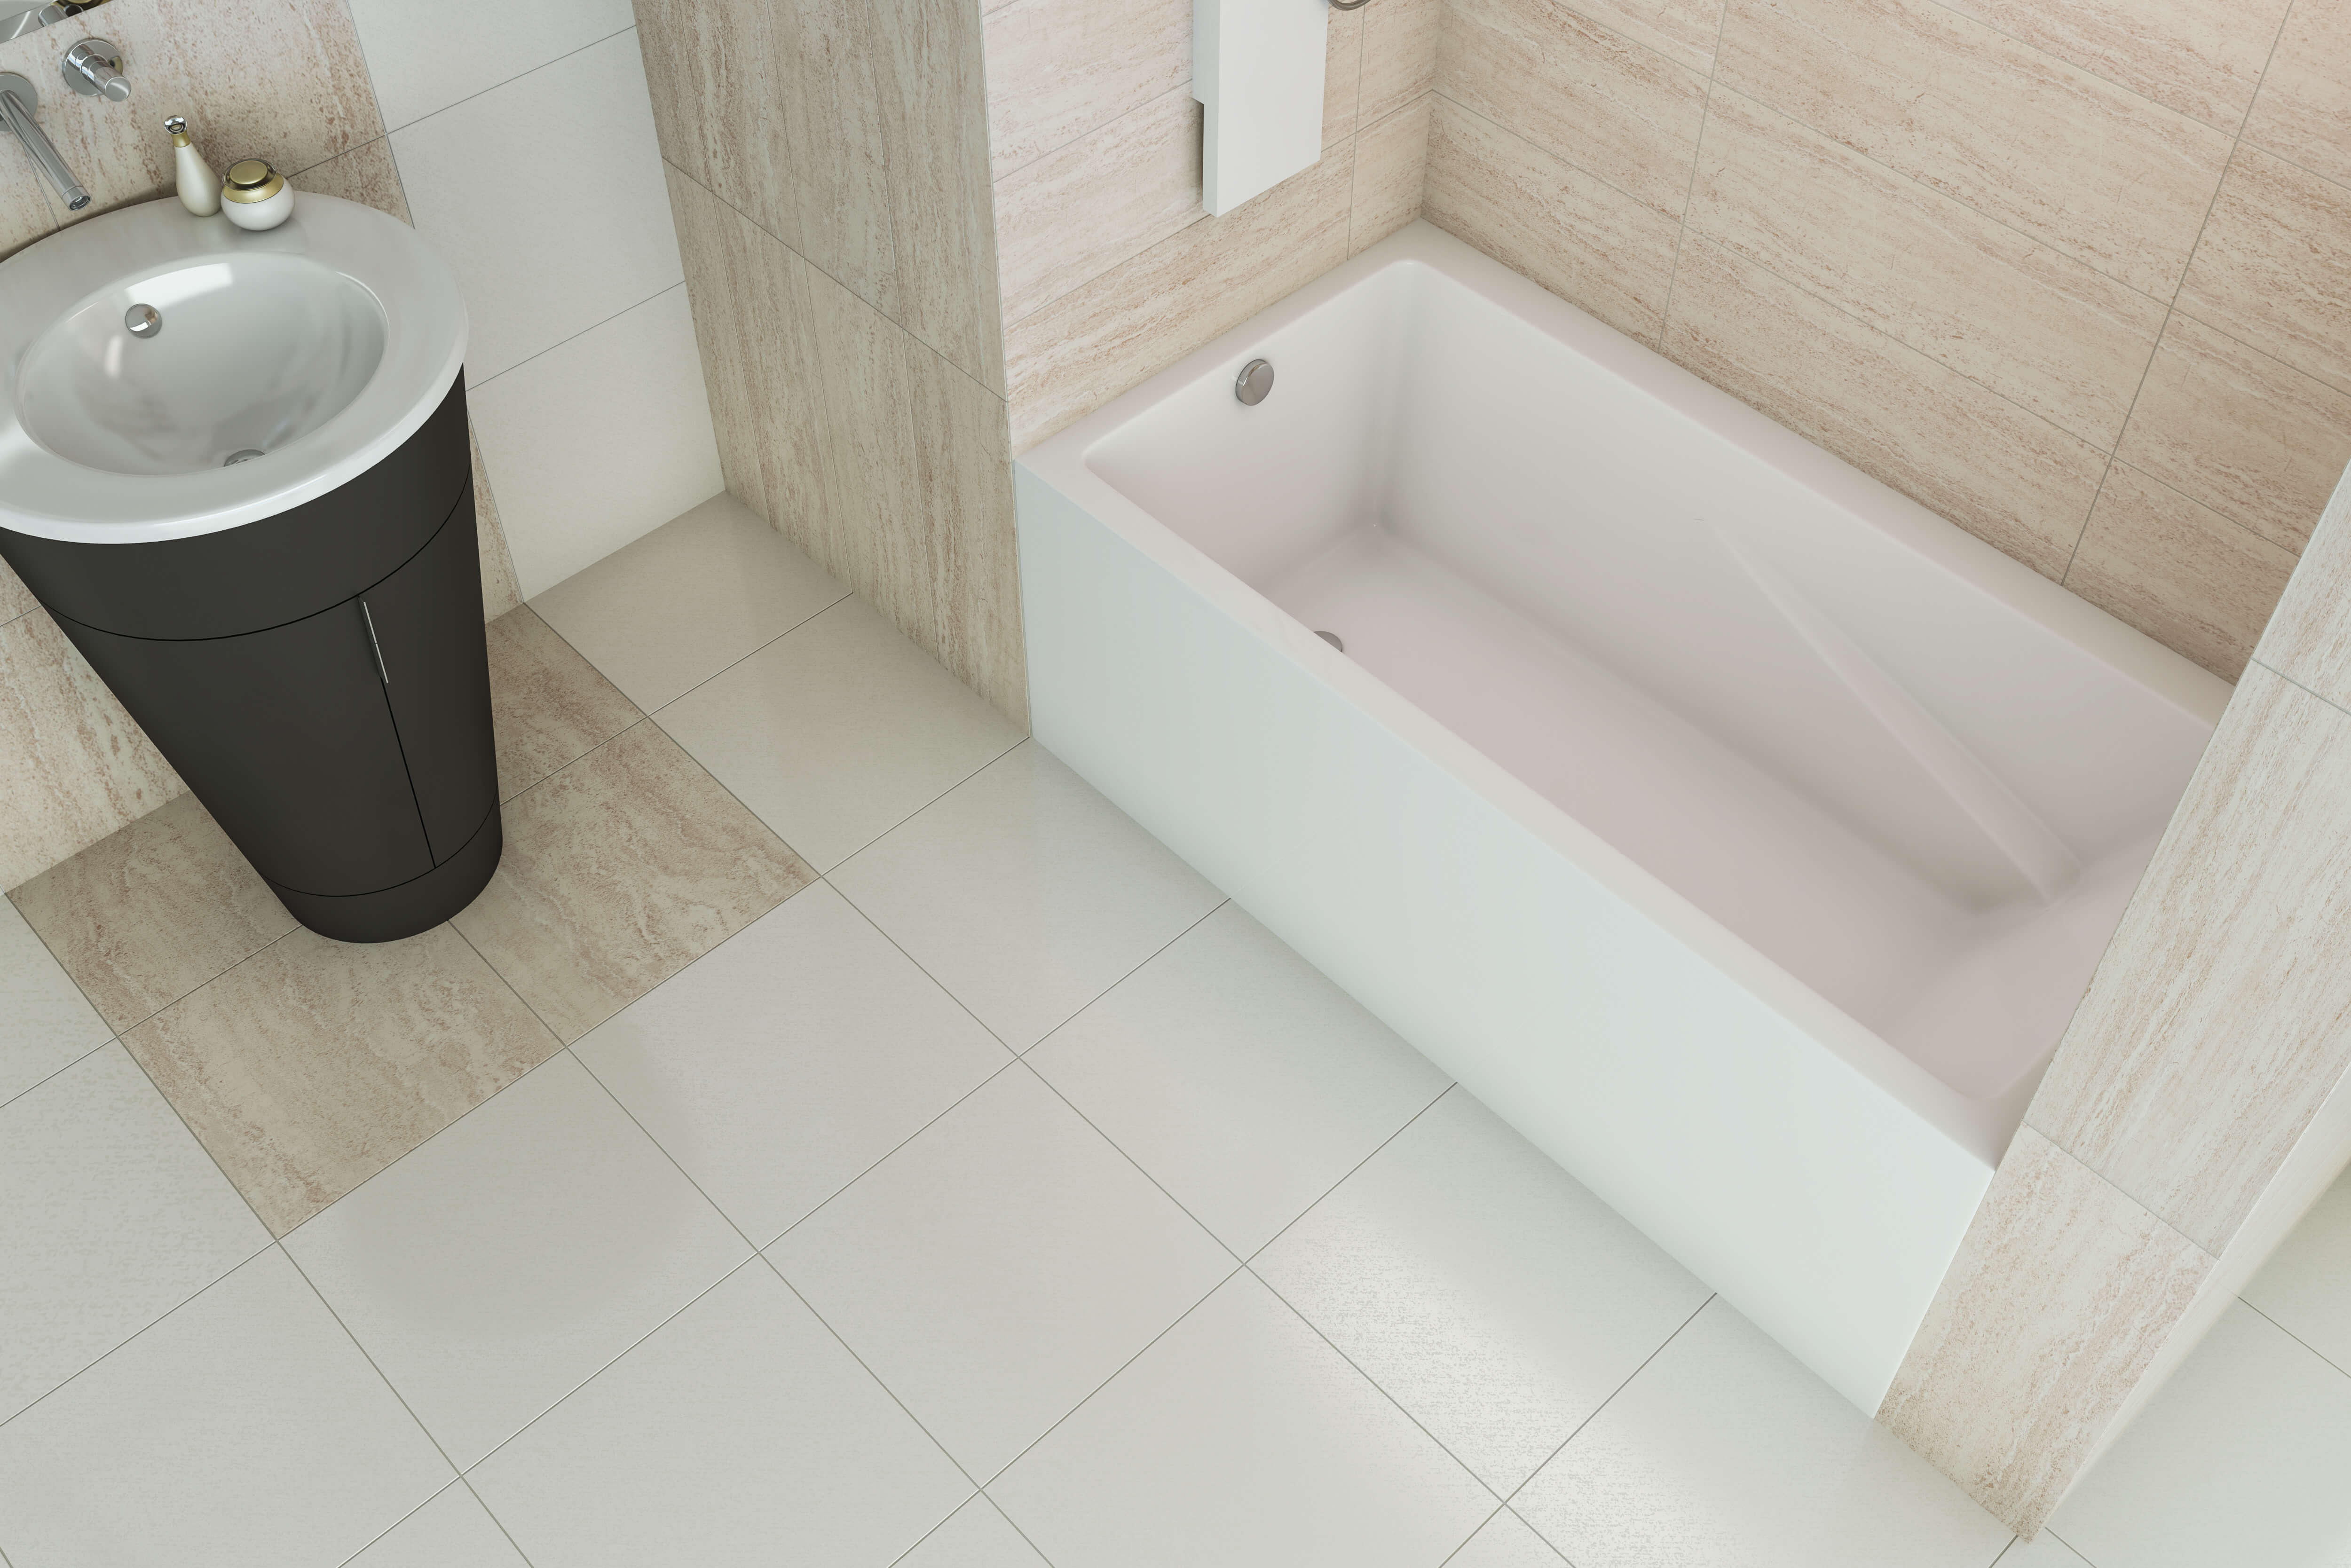 are vary images may aura image purposes alcove baths only actual product s bathtub illustration for x